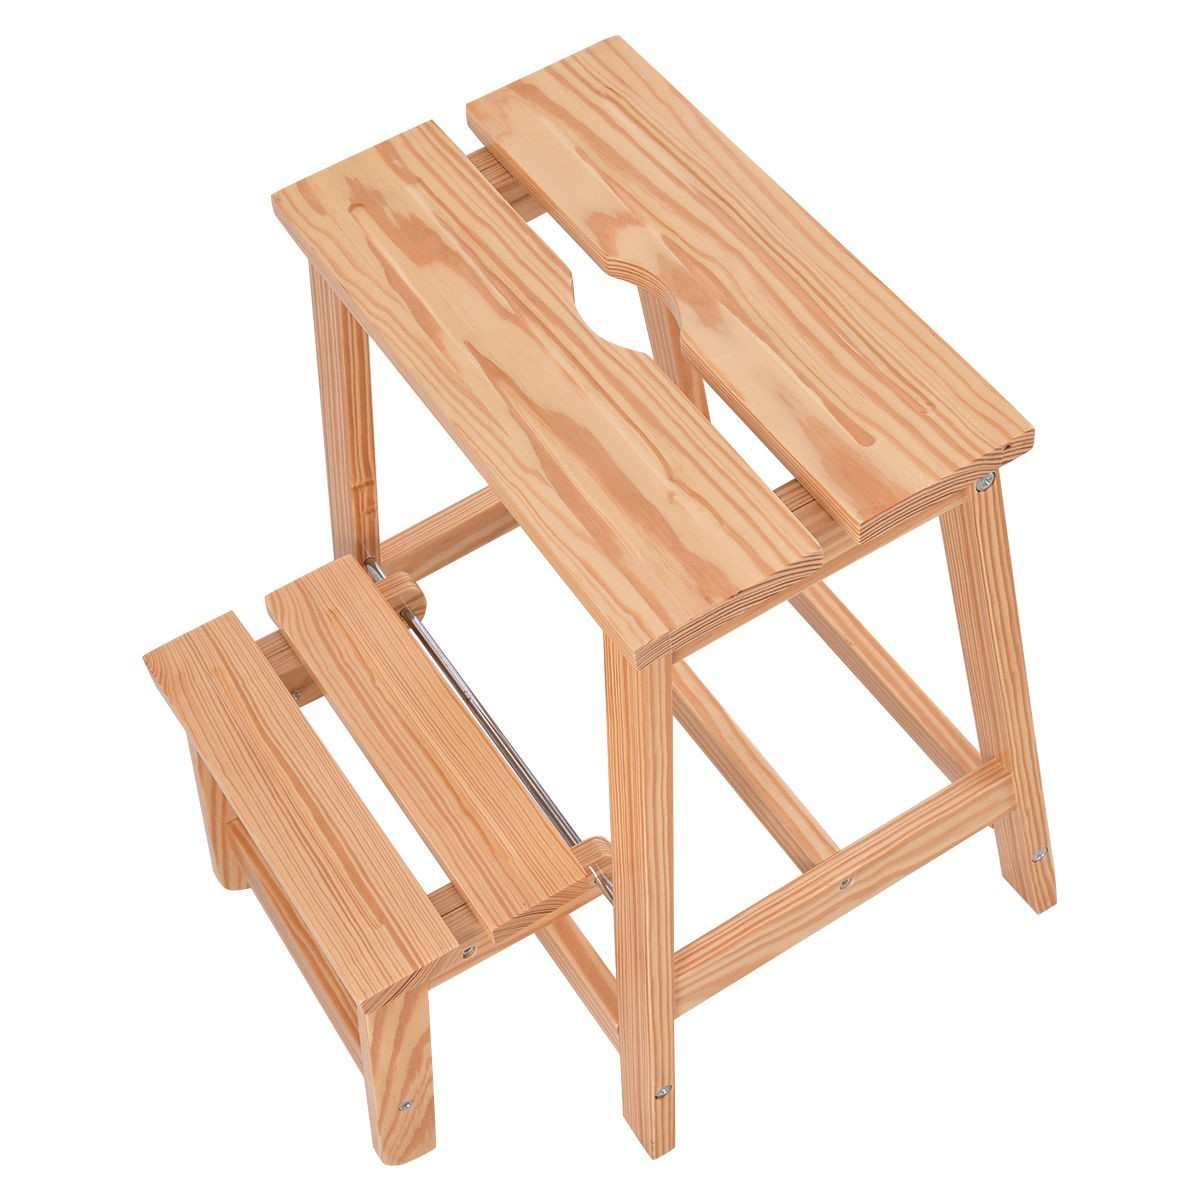 2 Tier Solid Wood Folding Step Stool